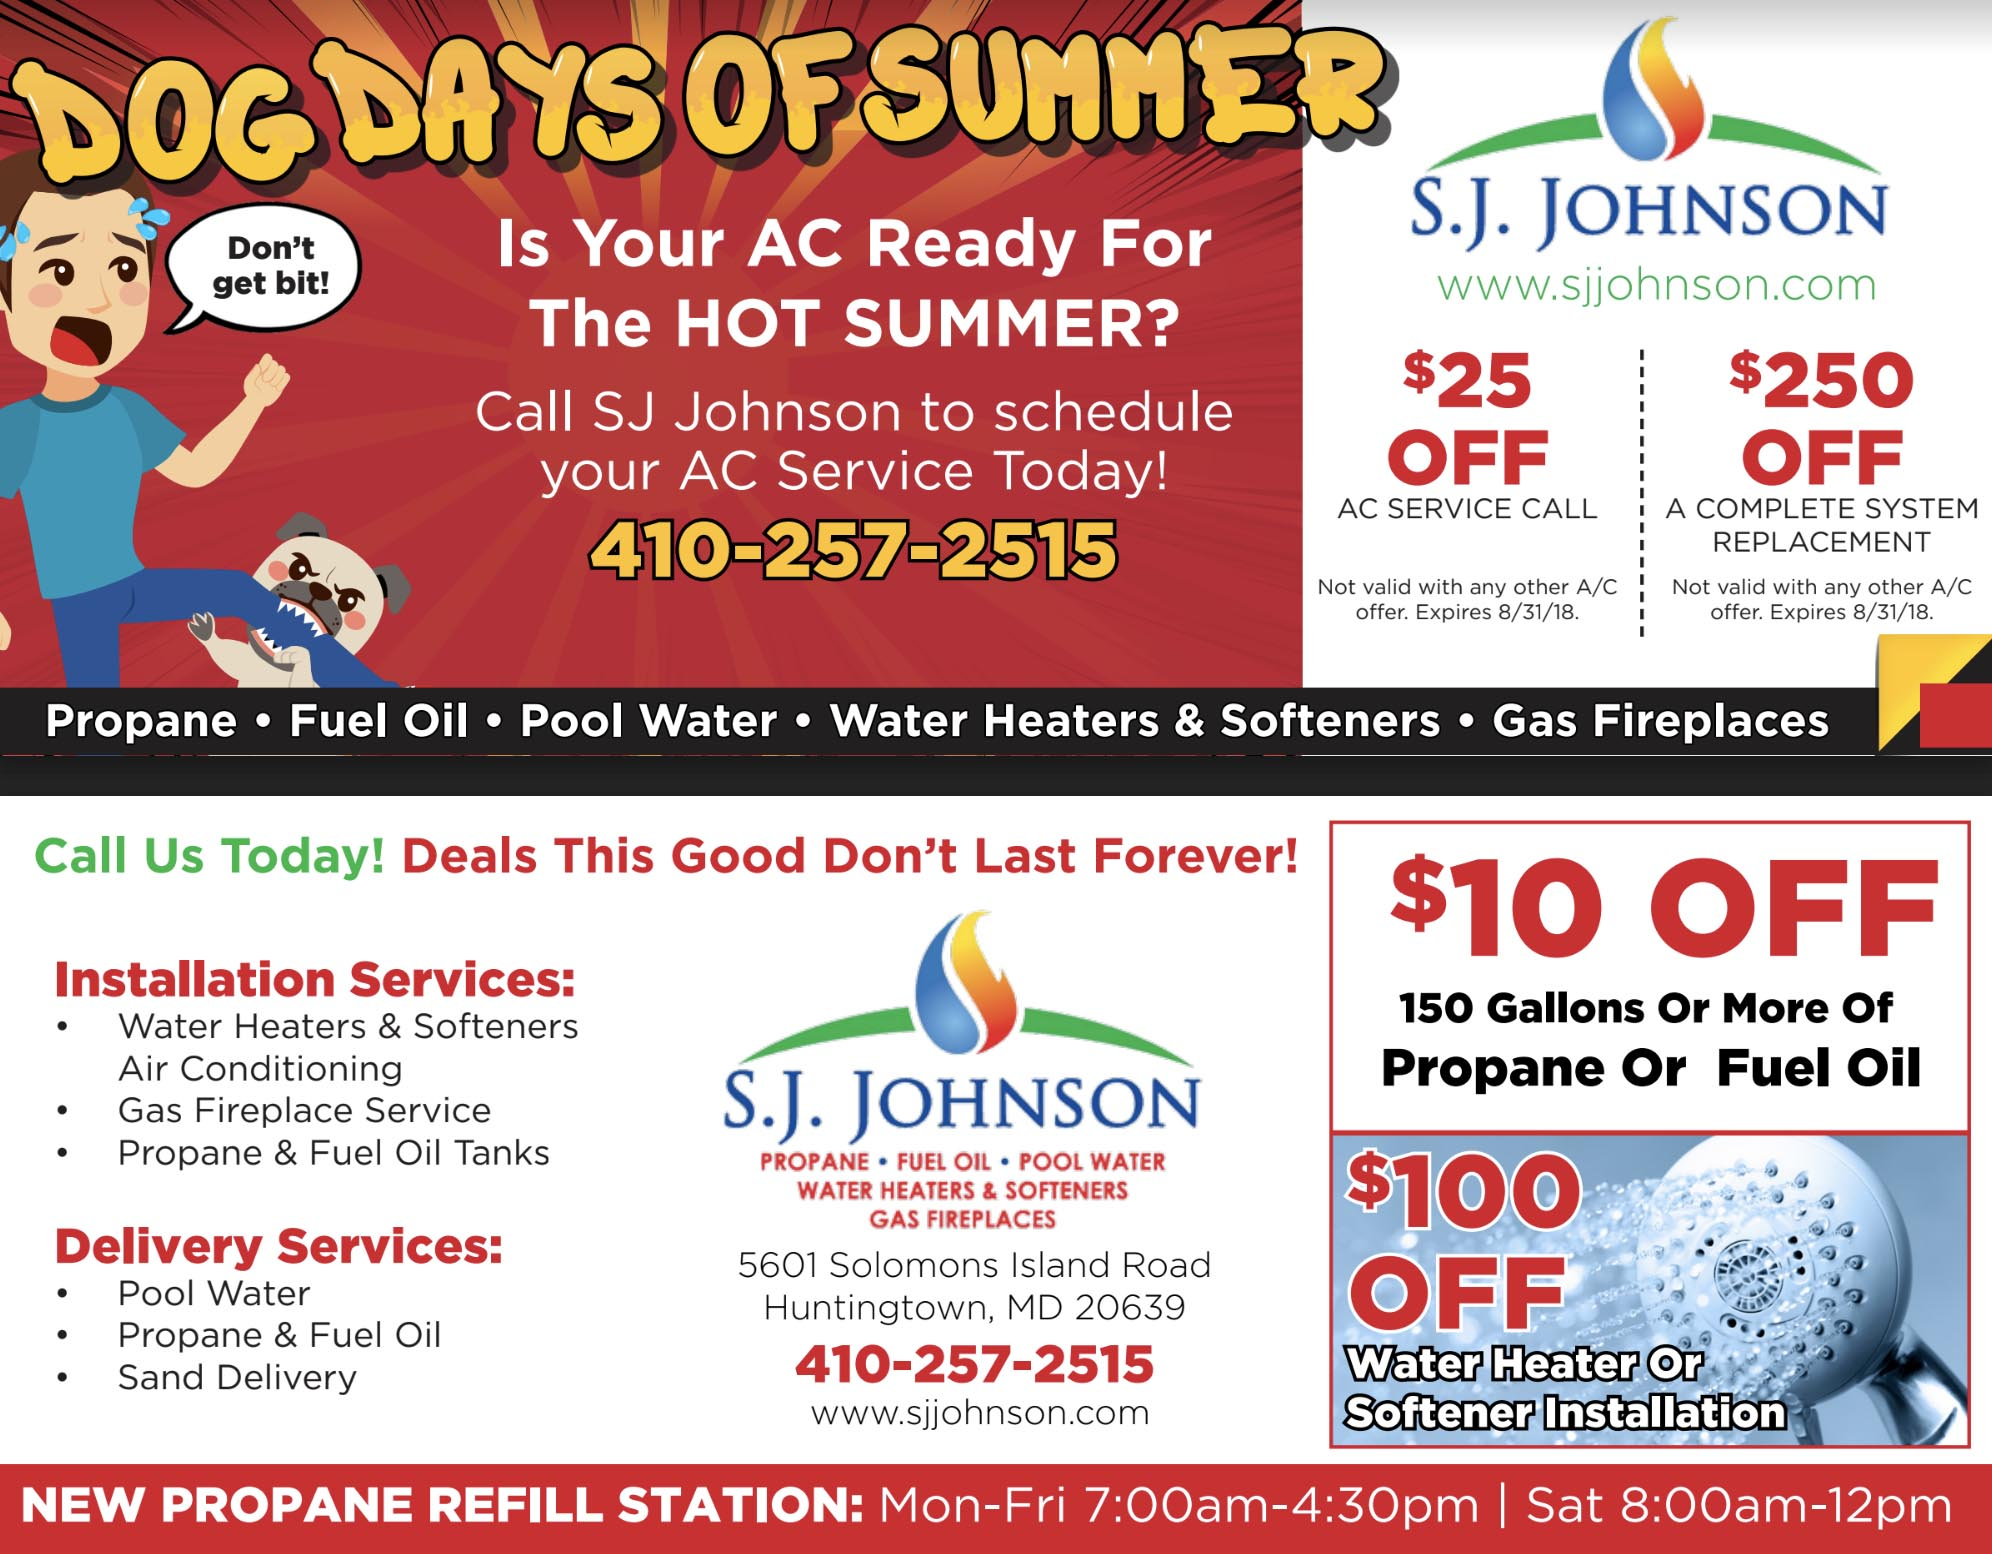 air conditioning specials in Southern MD